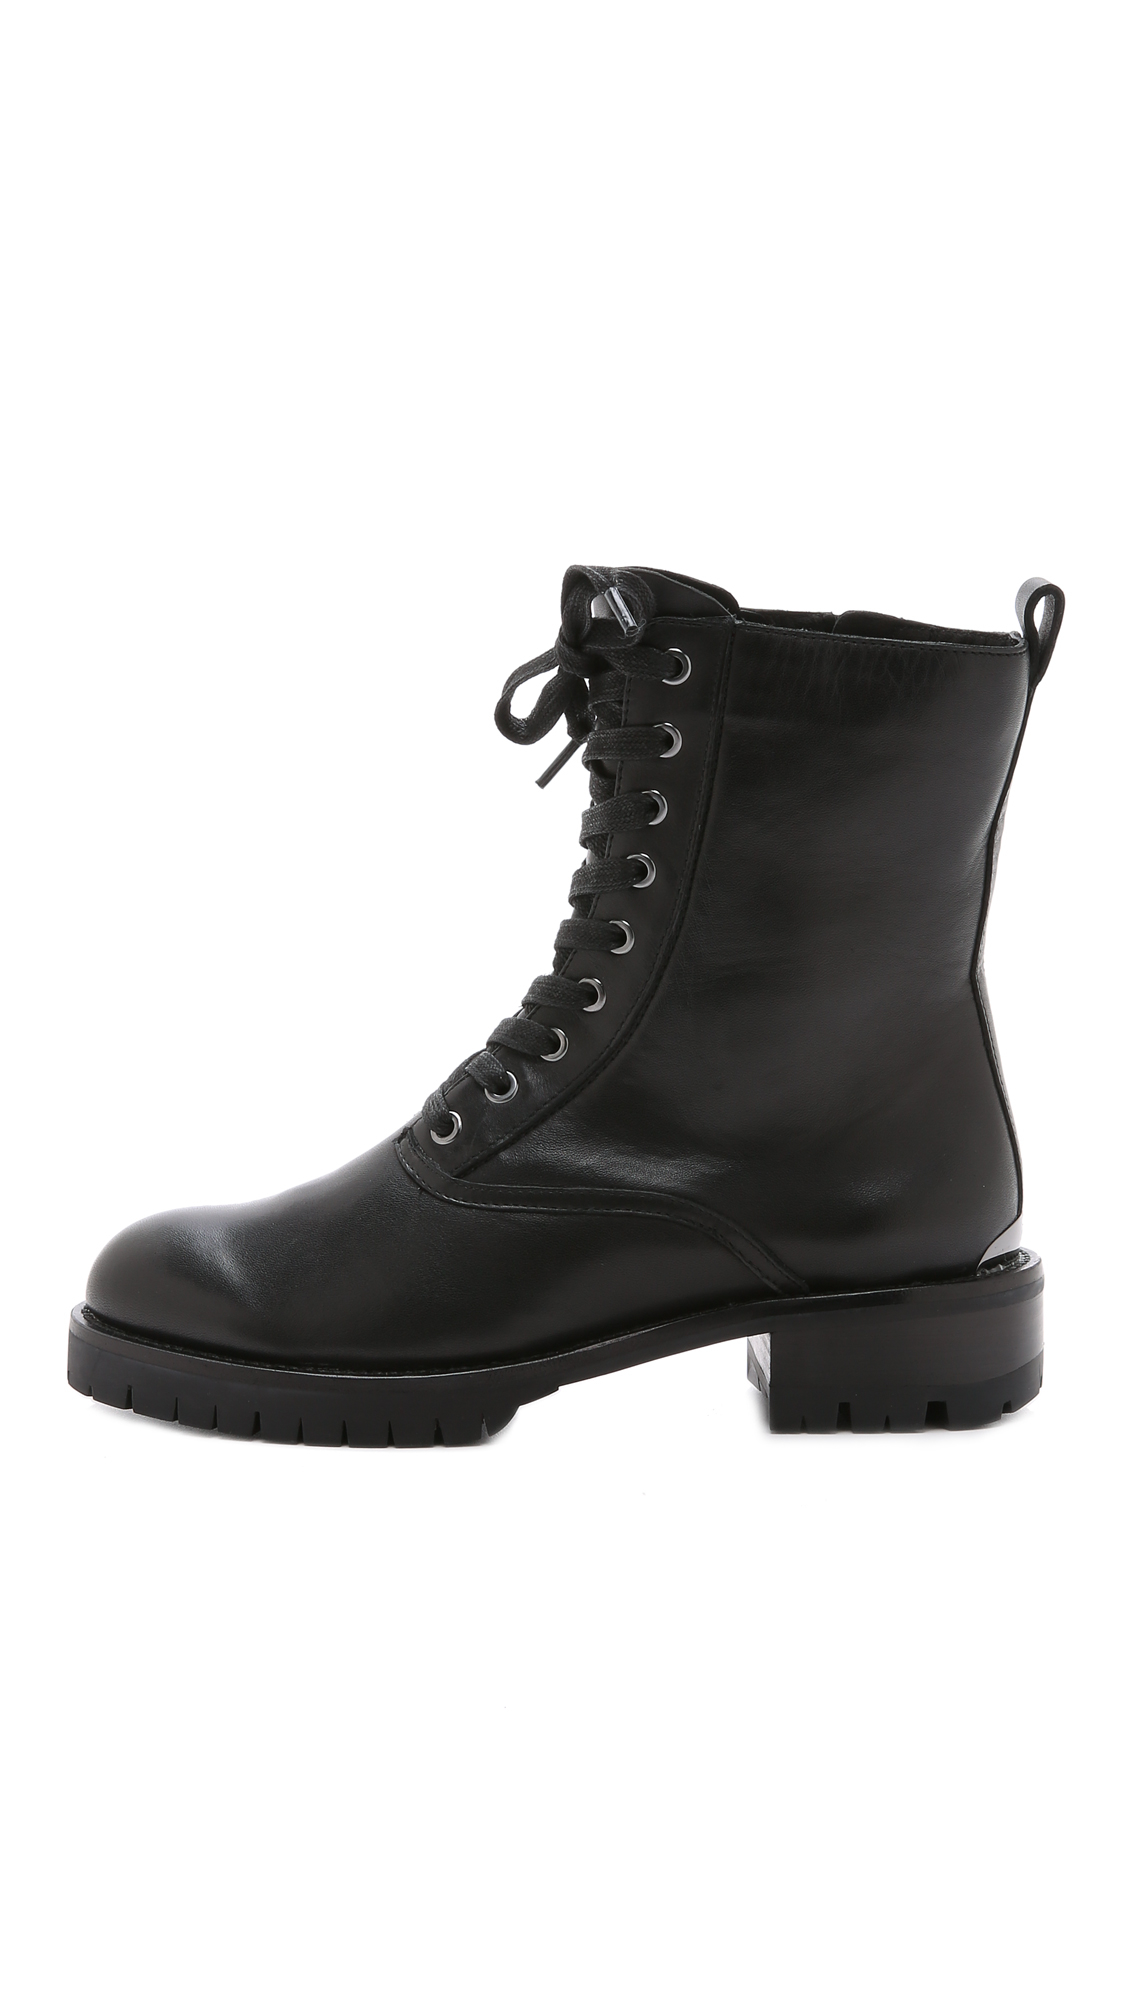 lyst dkny melissa lace up boots black in black